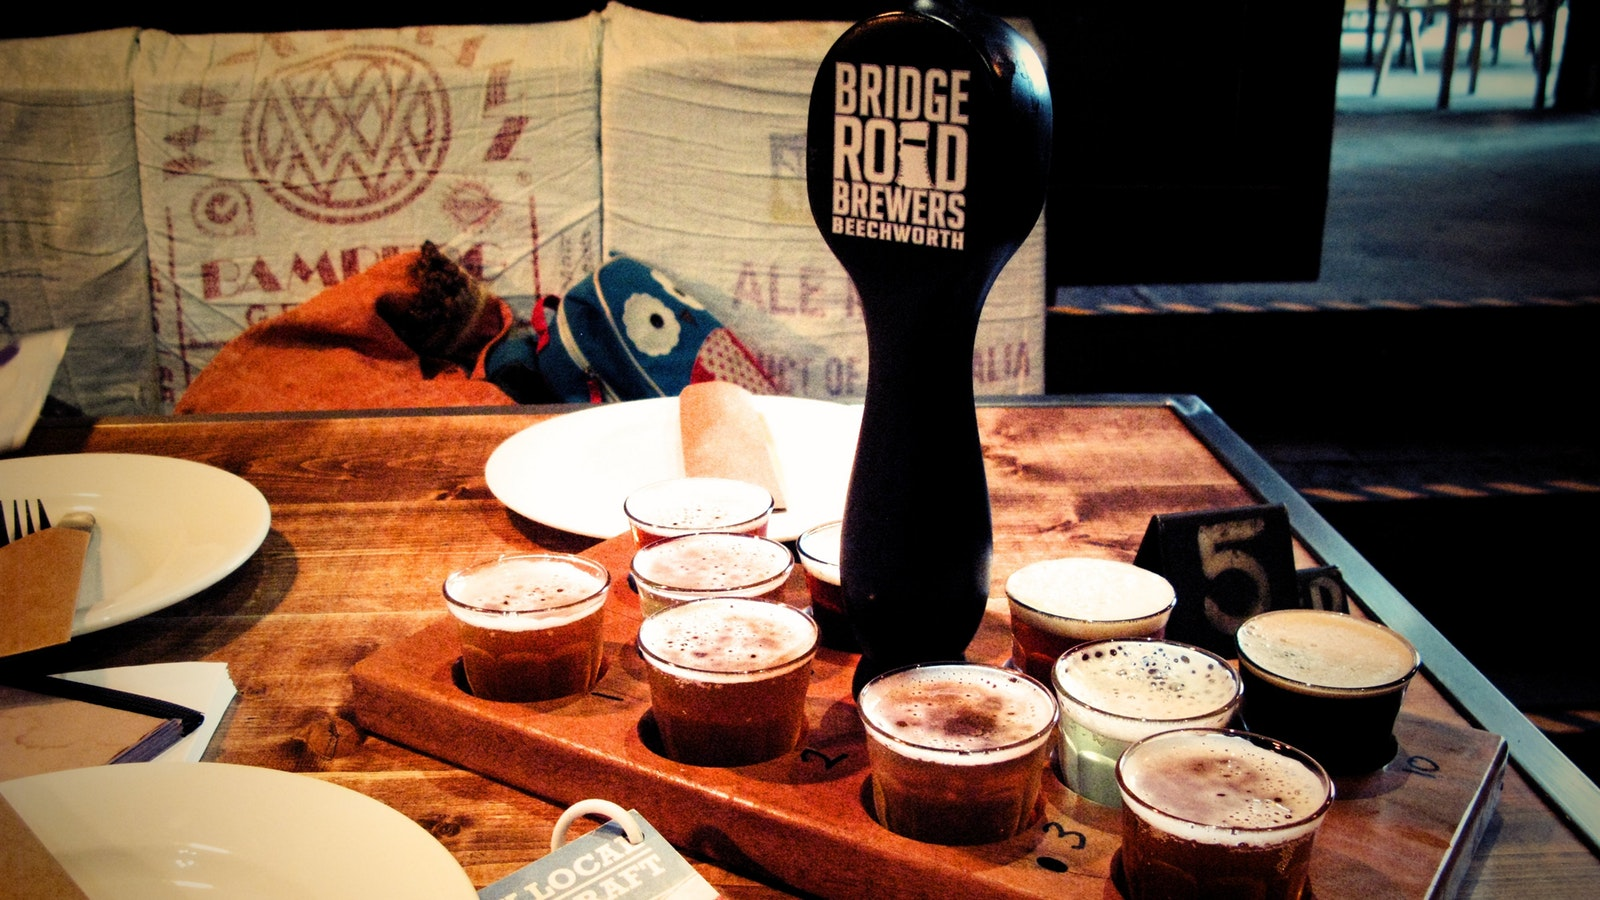 Beer tasting paddle at Bridge Road Brewers Beechworth